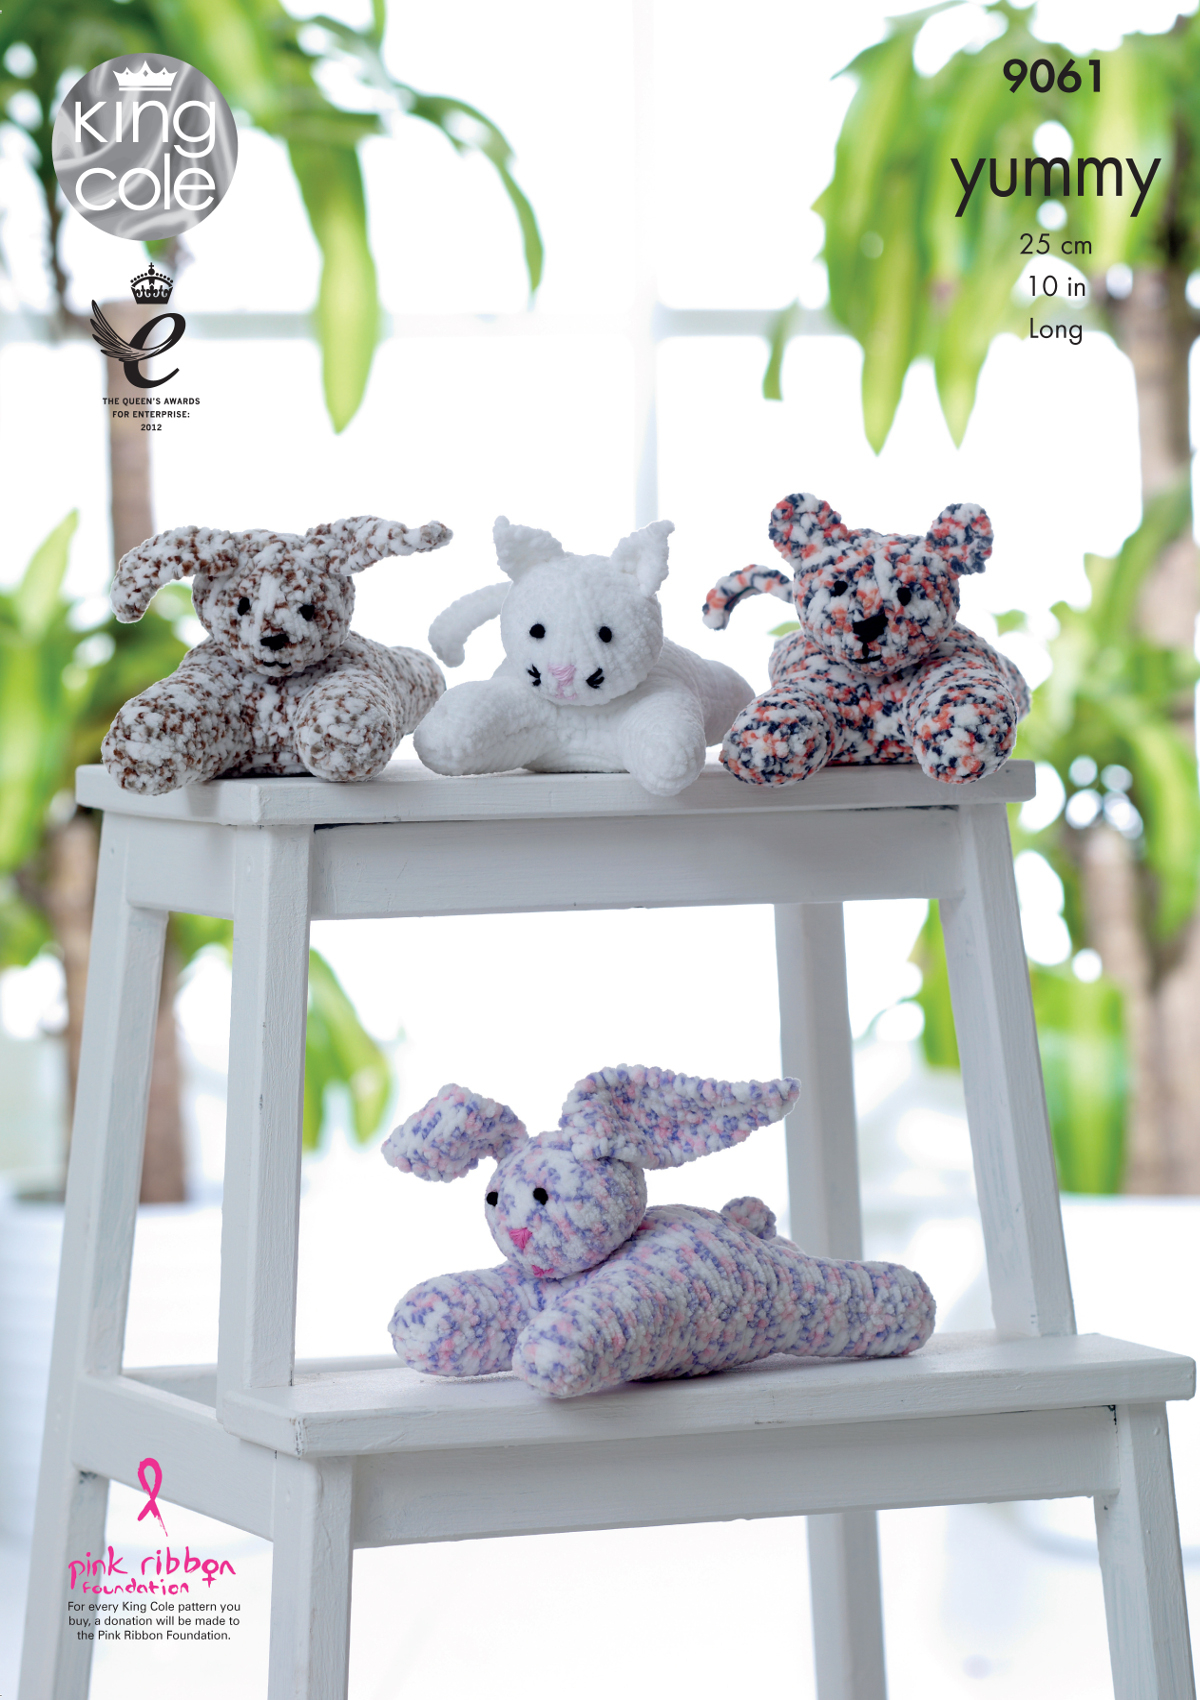 Knitting Patterns For Cat Toys Details About King Cole Yummy Knitting Pattern Dog Cat Tiger Cub Or Rabbit Laying Toys 9061